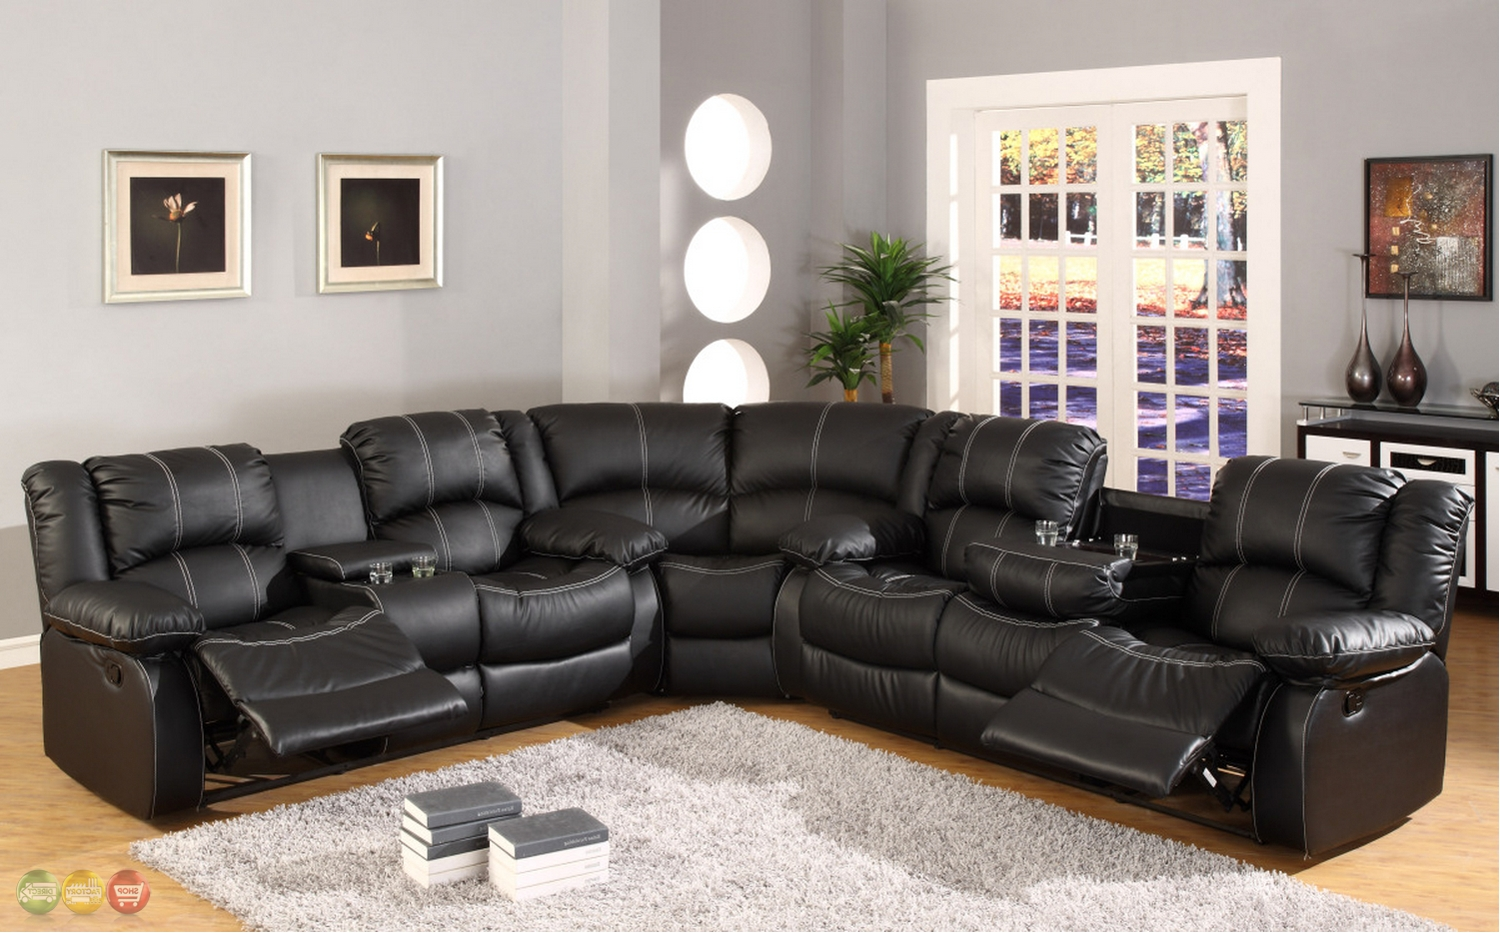 Sectional Sofas With Consoles In Most Up To Date Black Faux Leather Reclining Motion Sectional Sofa W/ Storage (View 11 of 20)